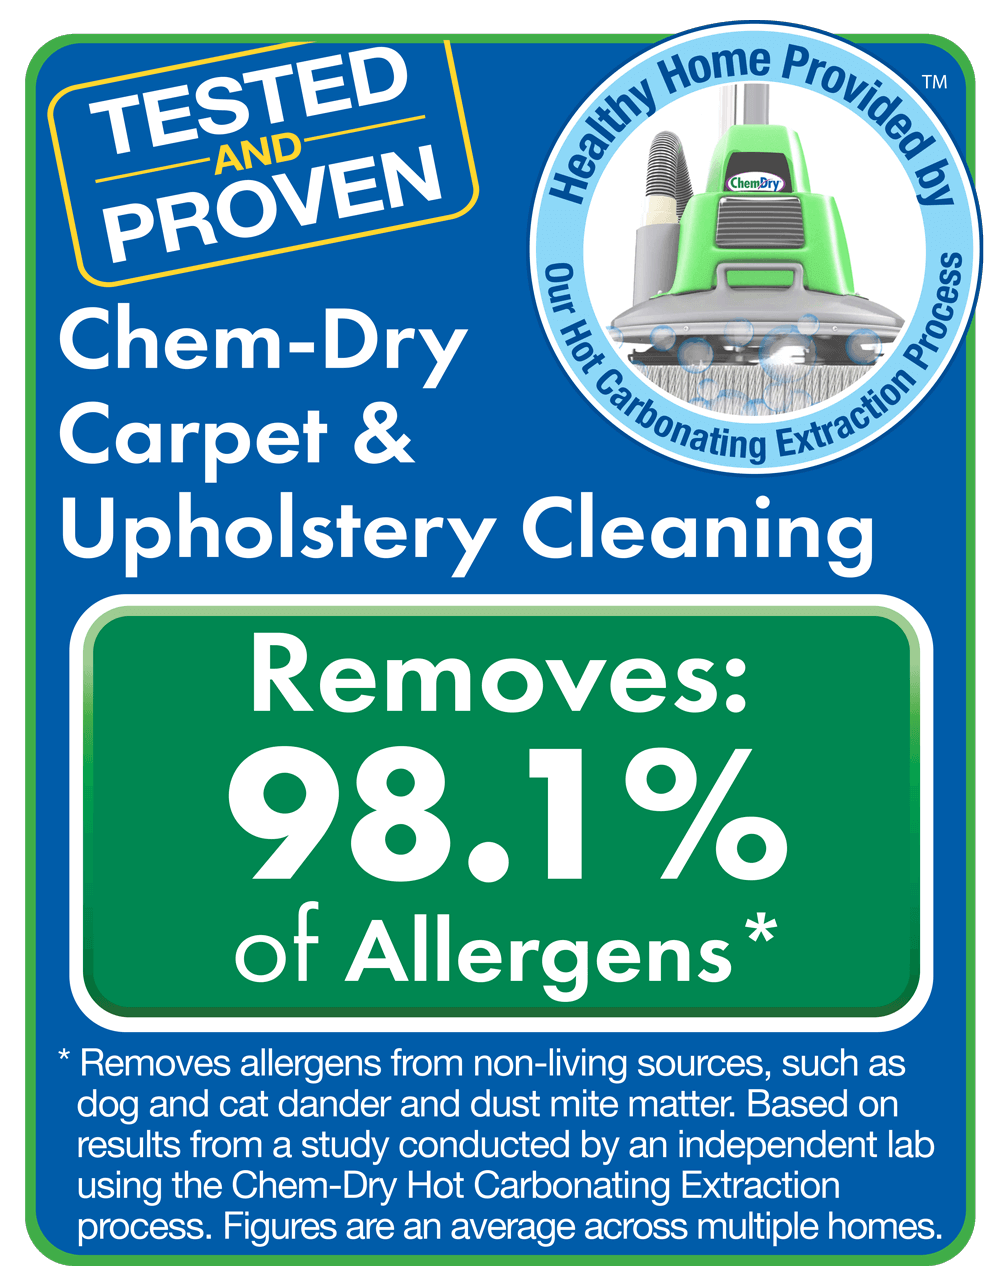 tested and proven san diego upholstery cleaning